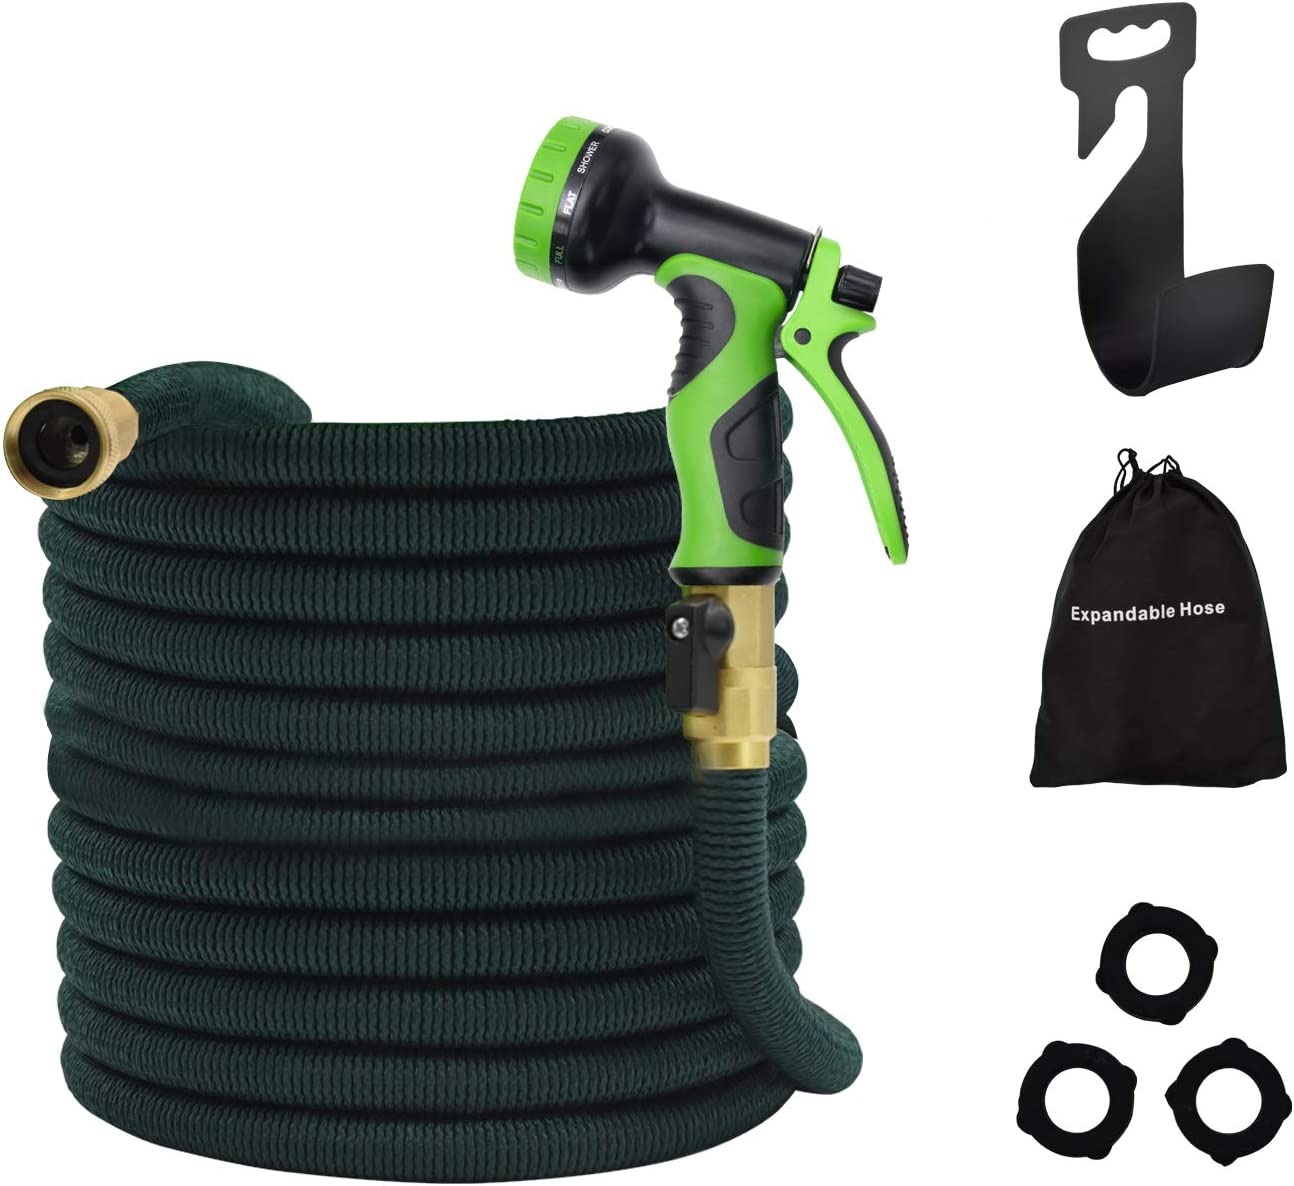 Besiter Flexible and Expandable Garden Hose - Strongest Triple Latex Core with 3/4 Solid Brass Fittings Free 8 Function Spray Nozzle, Easy Storage Kink Free Pocket Water Hose (50FT)